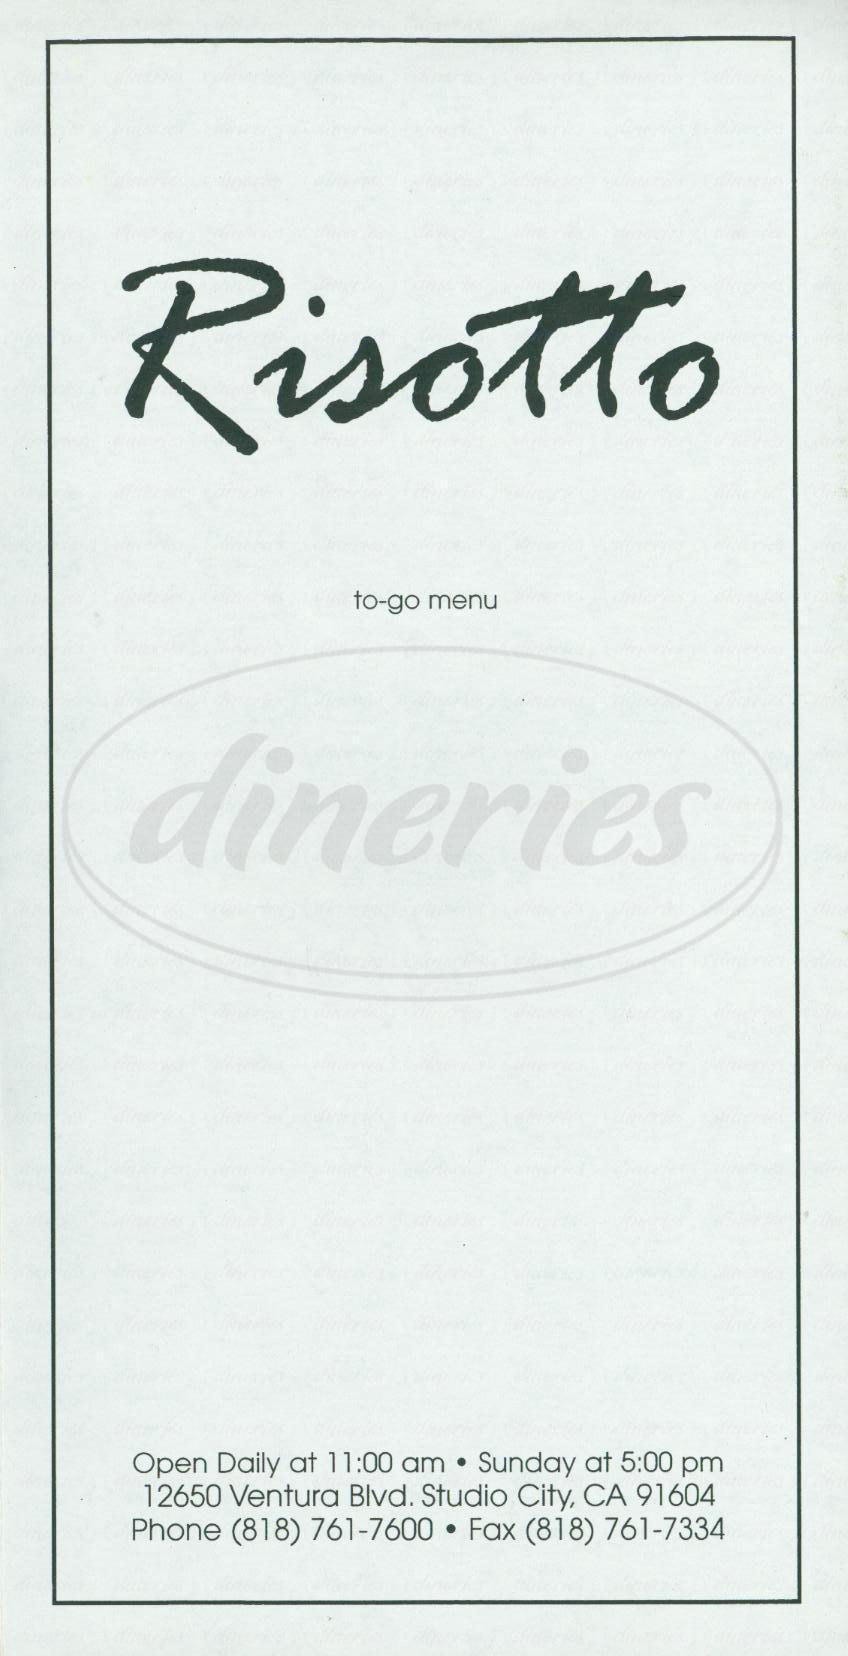 menu for Risotto